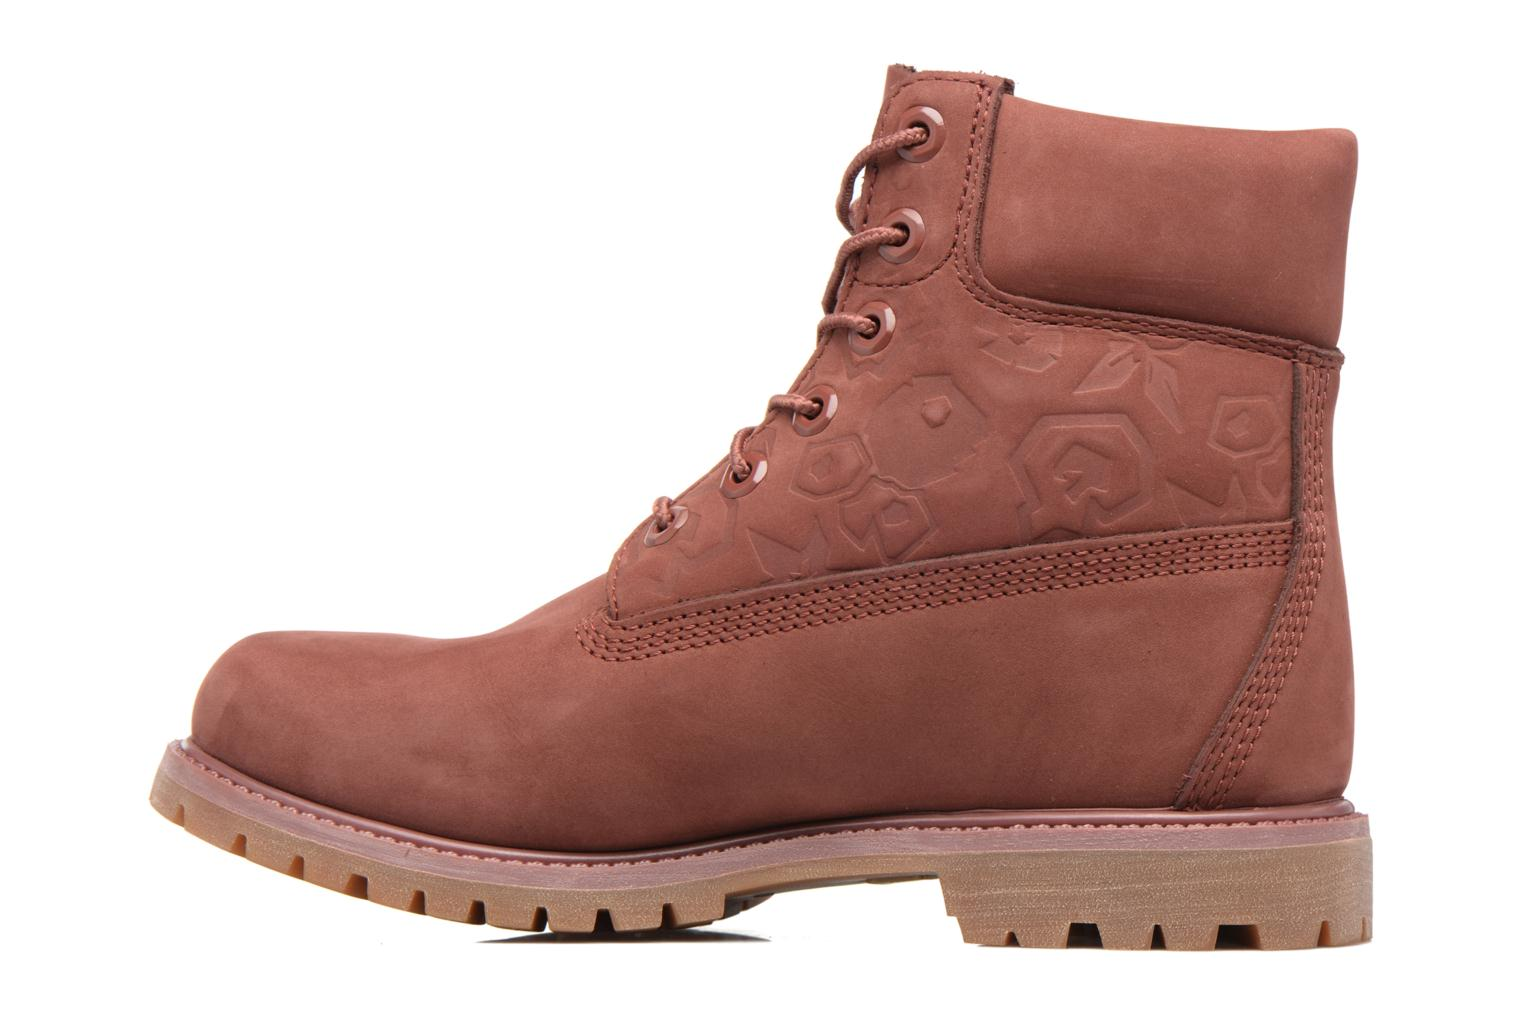 6in Premium Boot - W Sable Waterbuck Embossed